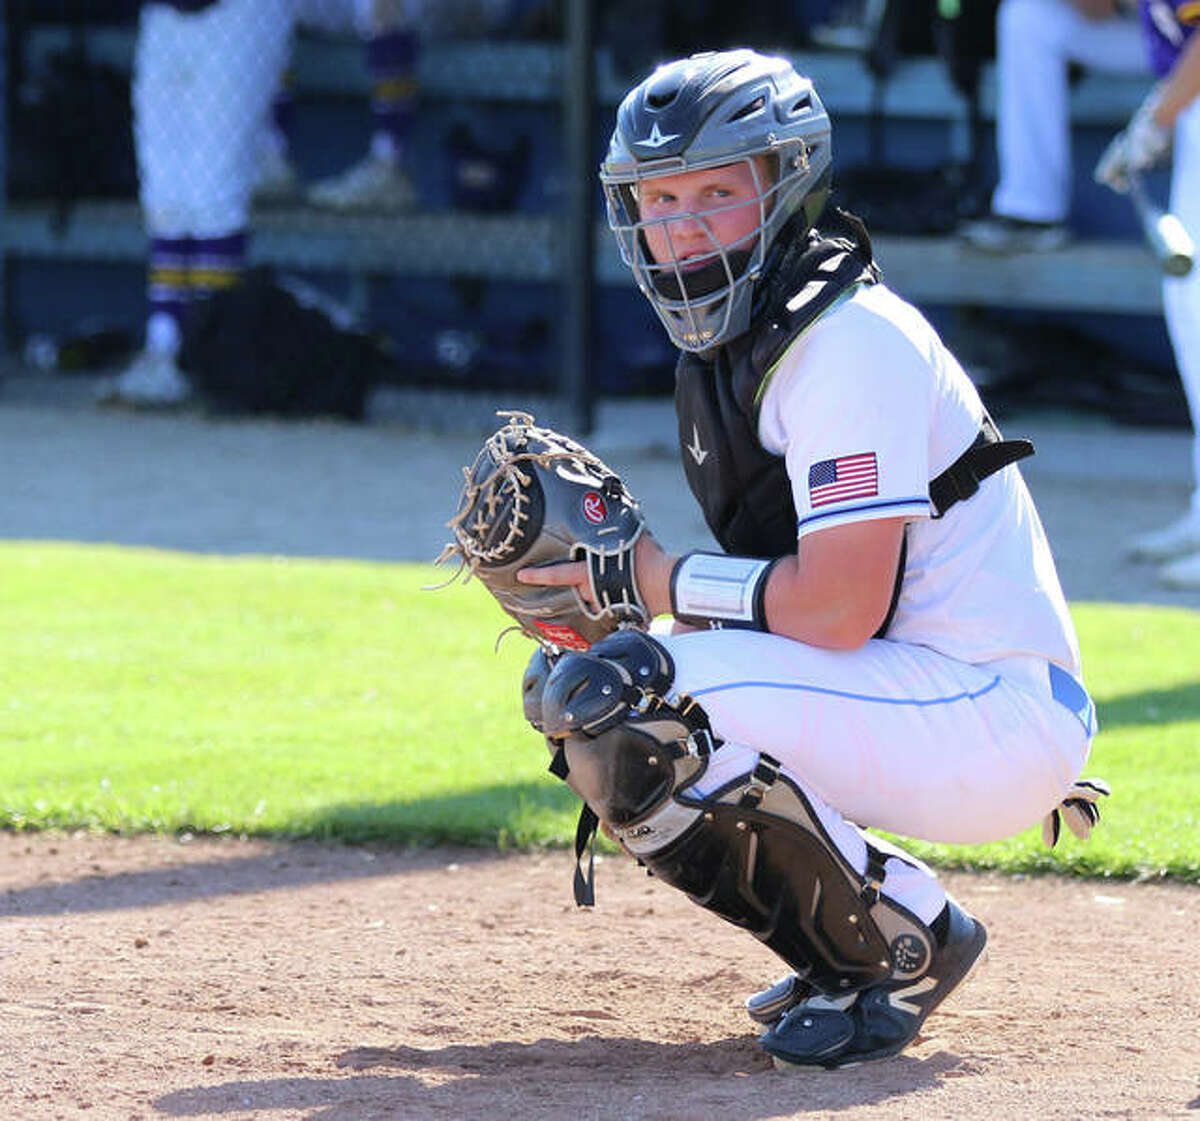 Jersey catcher C.J. Brunaugh looks into the dugout for a sign in last week's game against CM in Jerseyville.